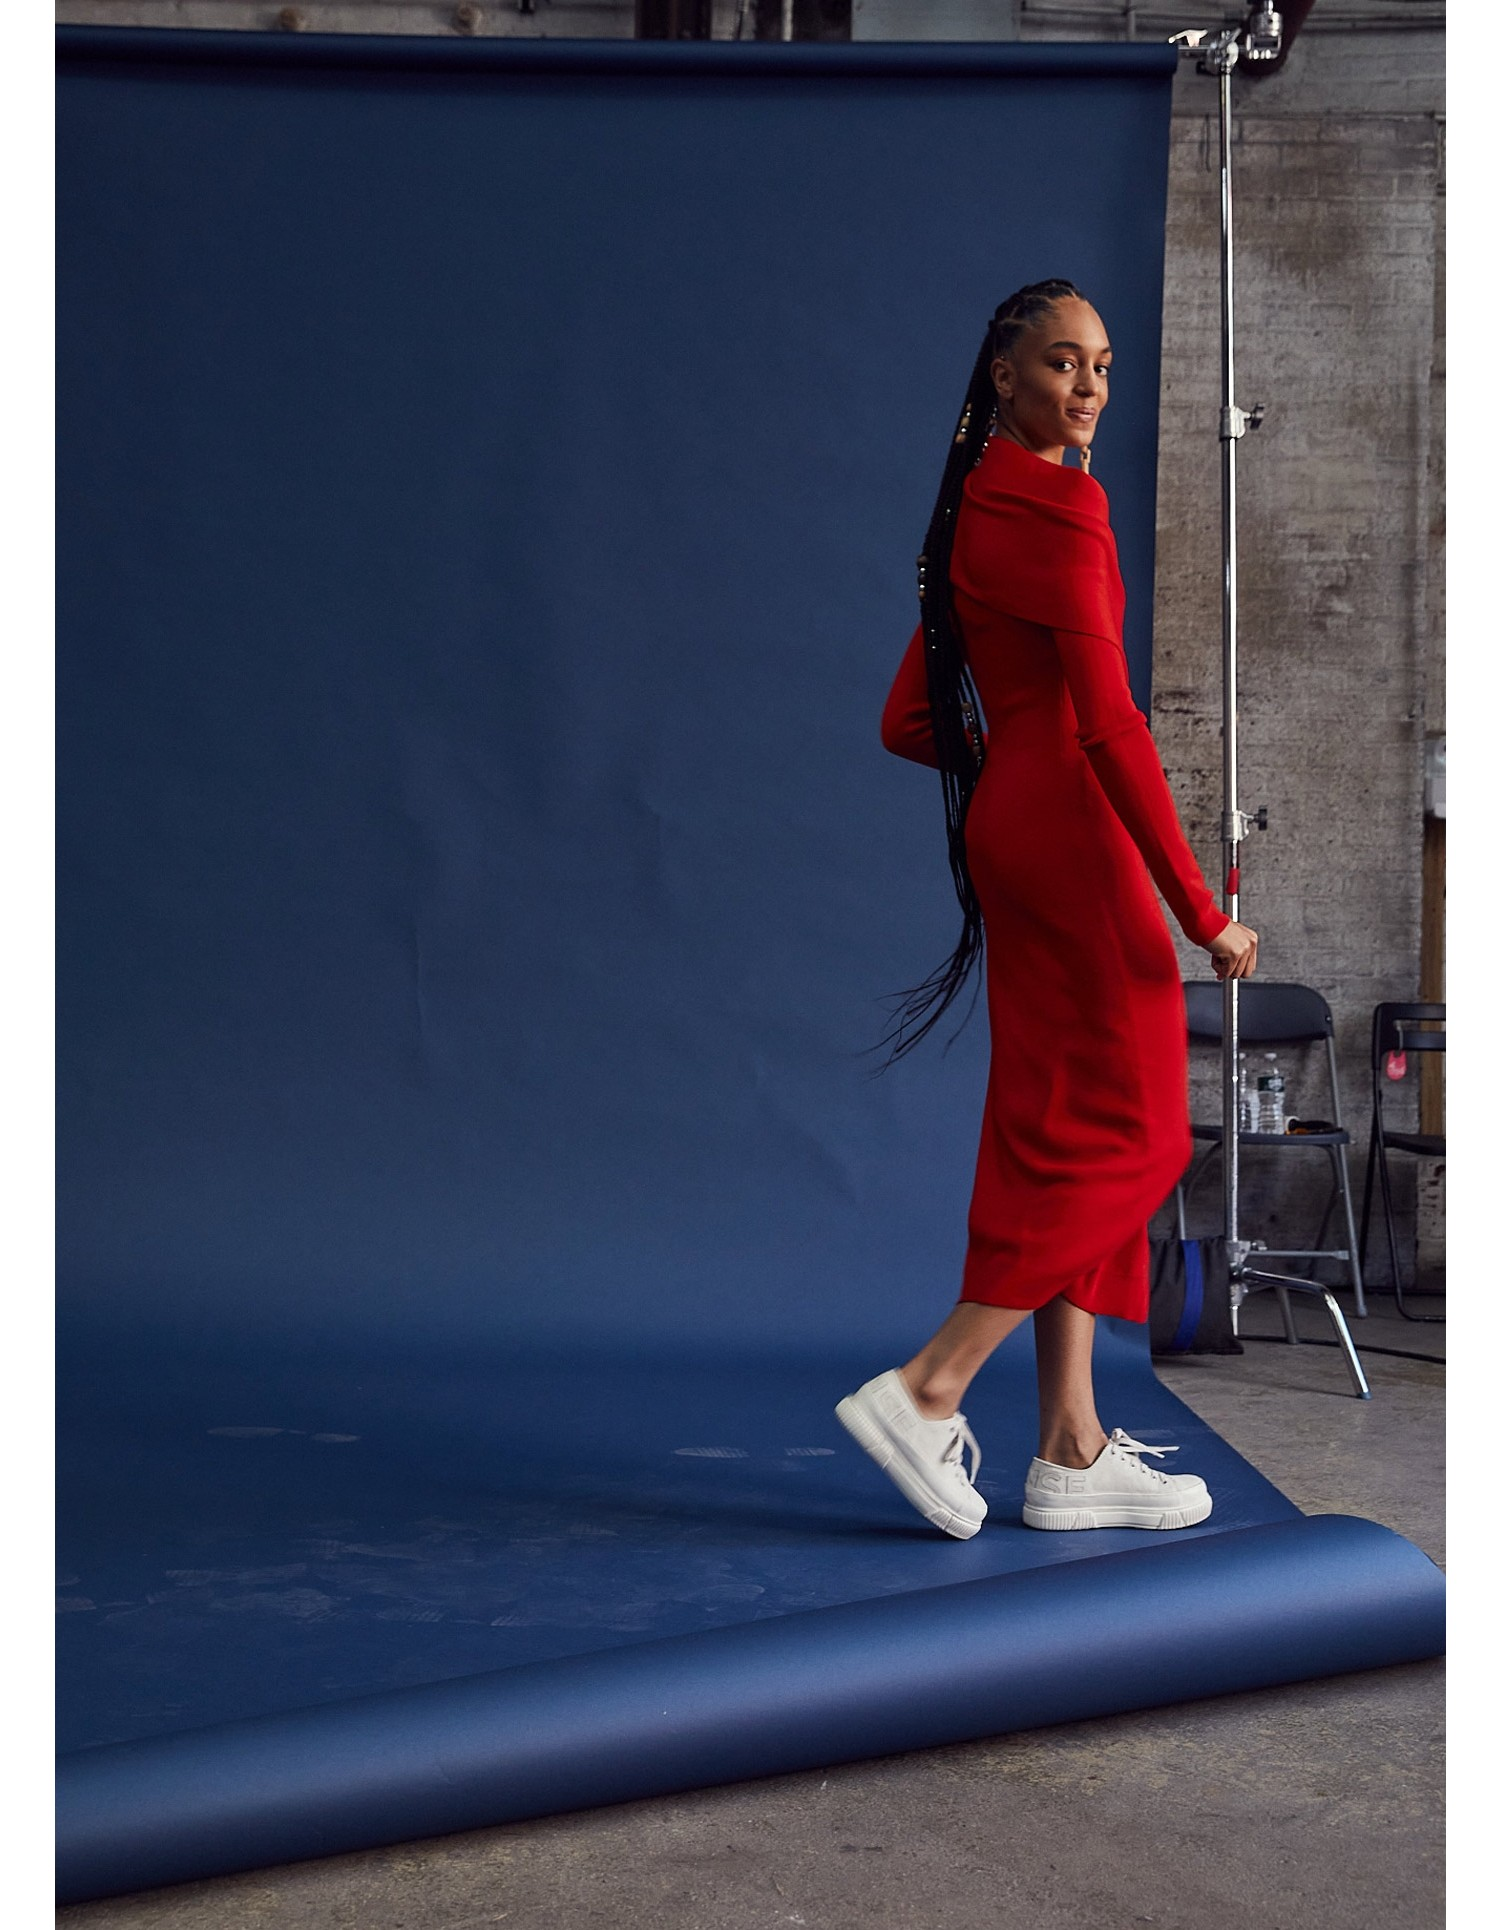 MONSE Twisted Wrap Collar Knit Dress in Code Red on Model Look 5